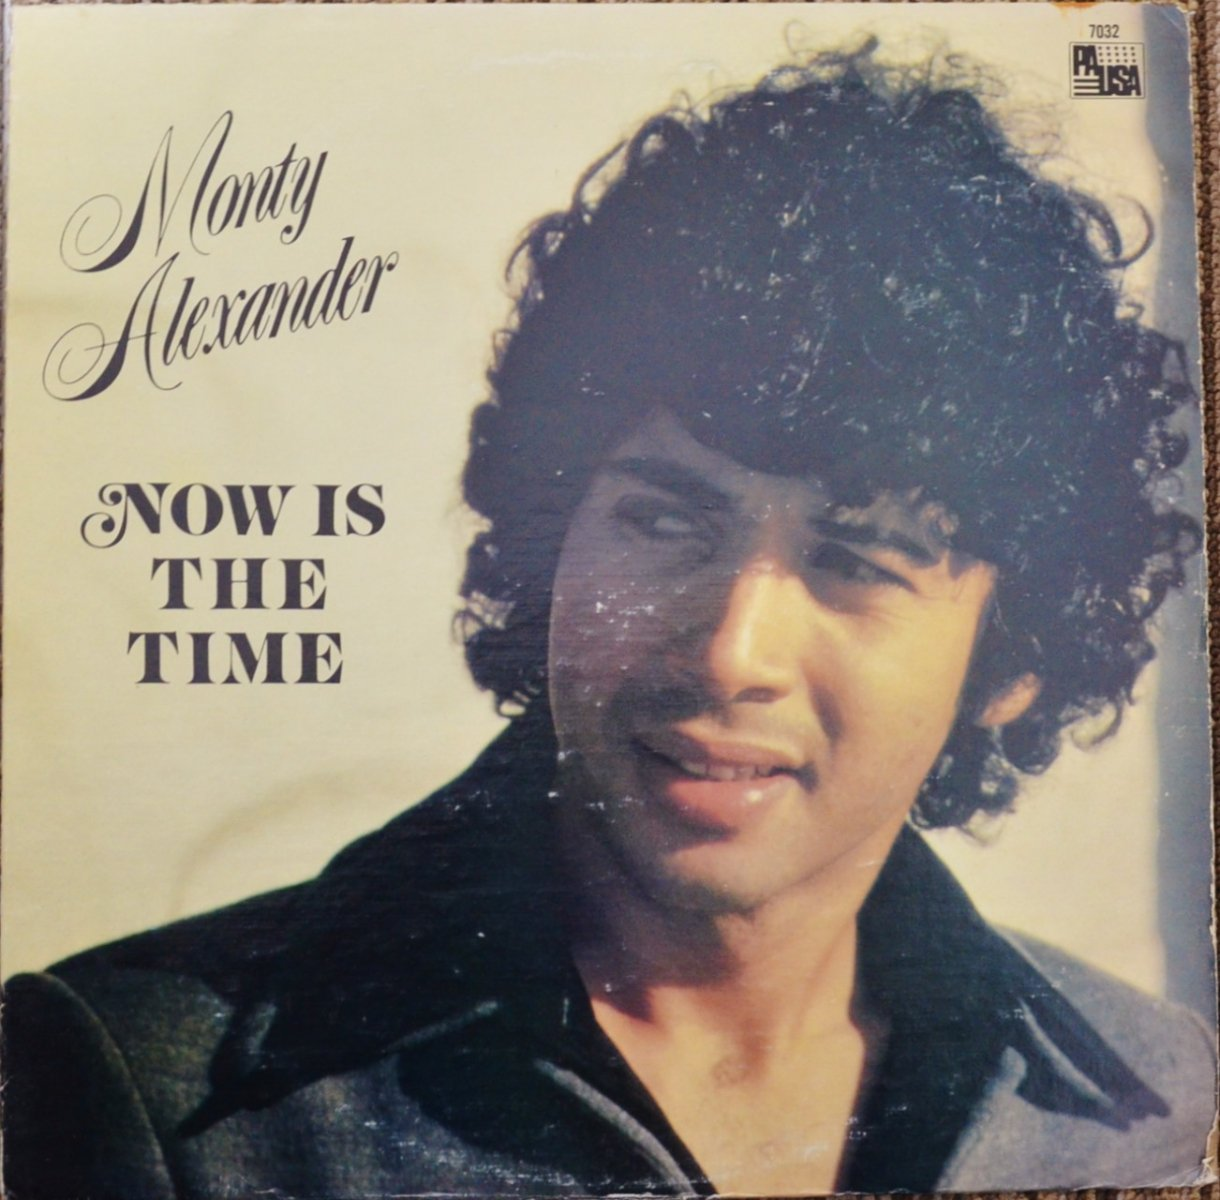 MONTY ALEXANDER ‎/ NOW IS THE TIME (LP)